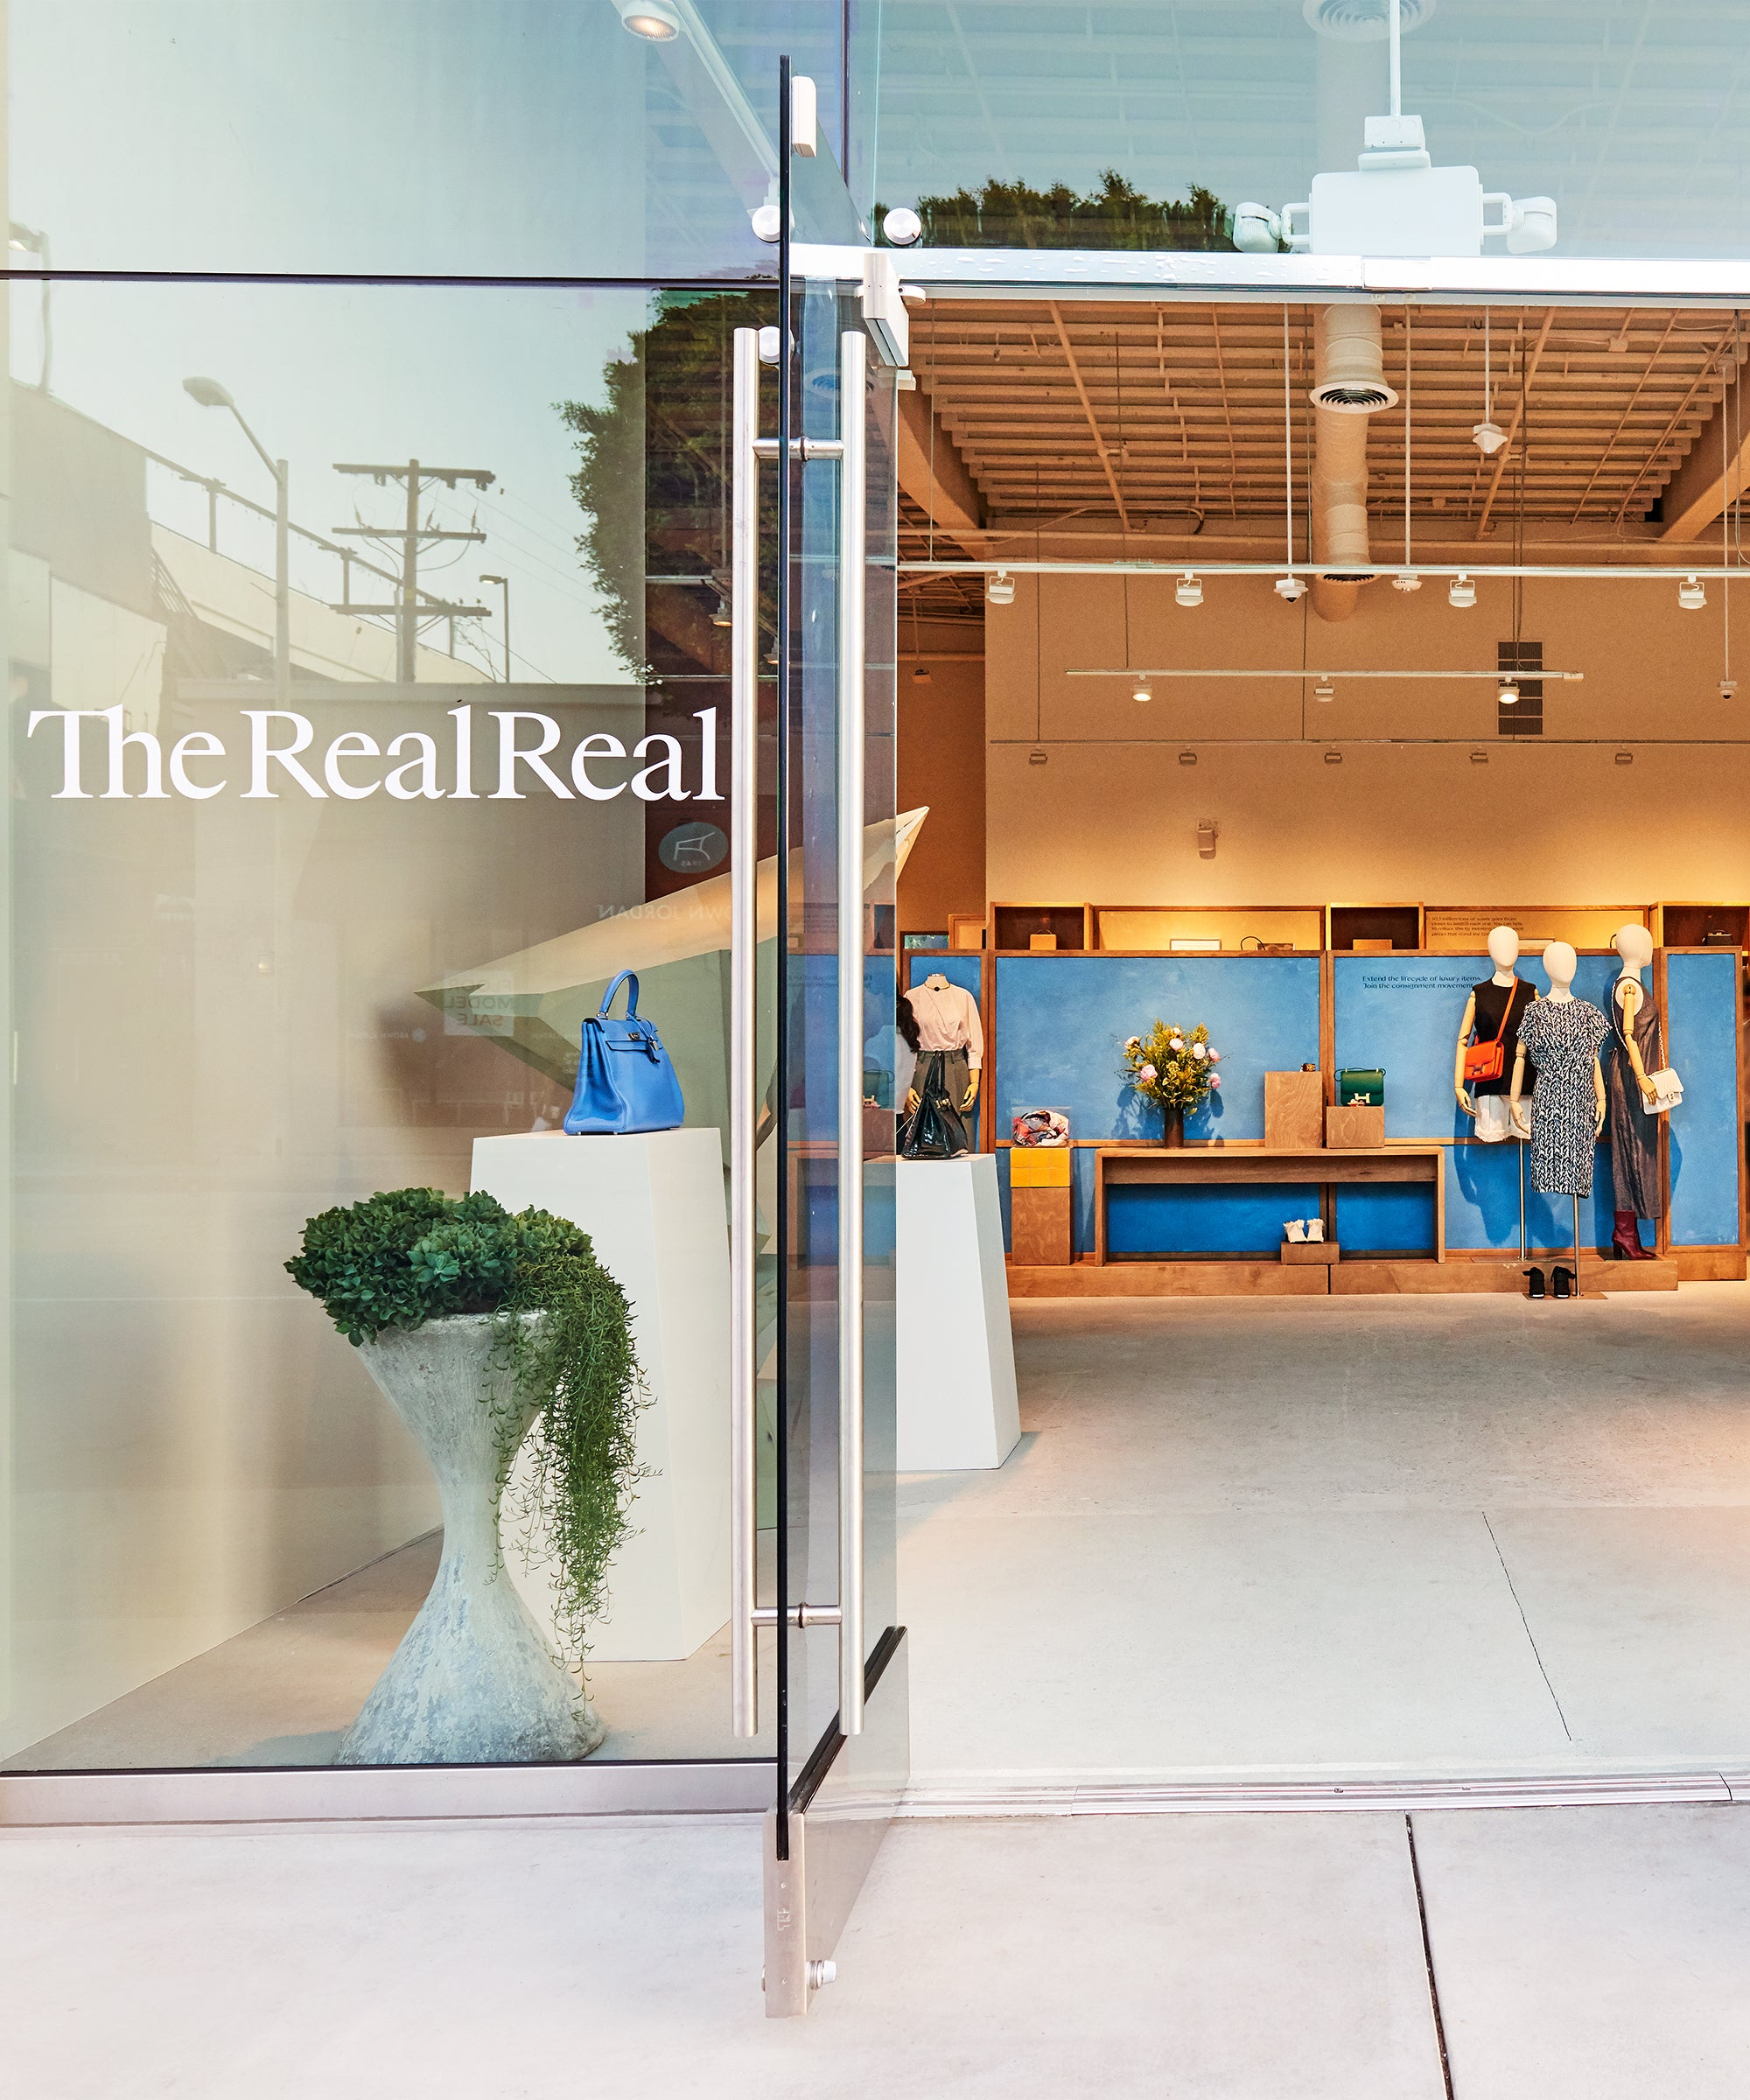 How A Booming Resale Business Could Lead The Future of Sustainable Fashion